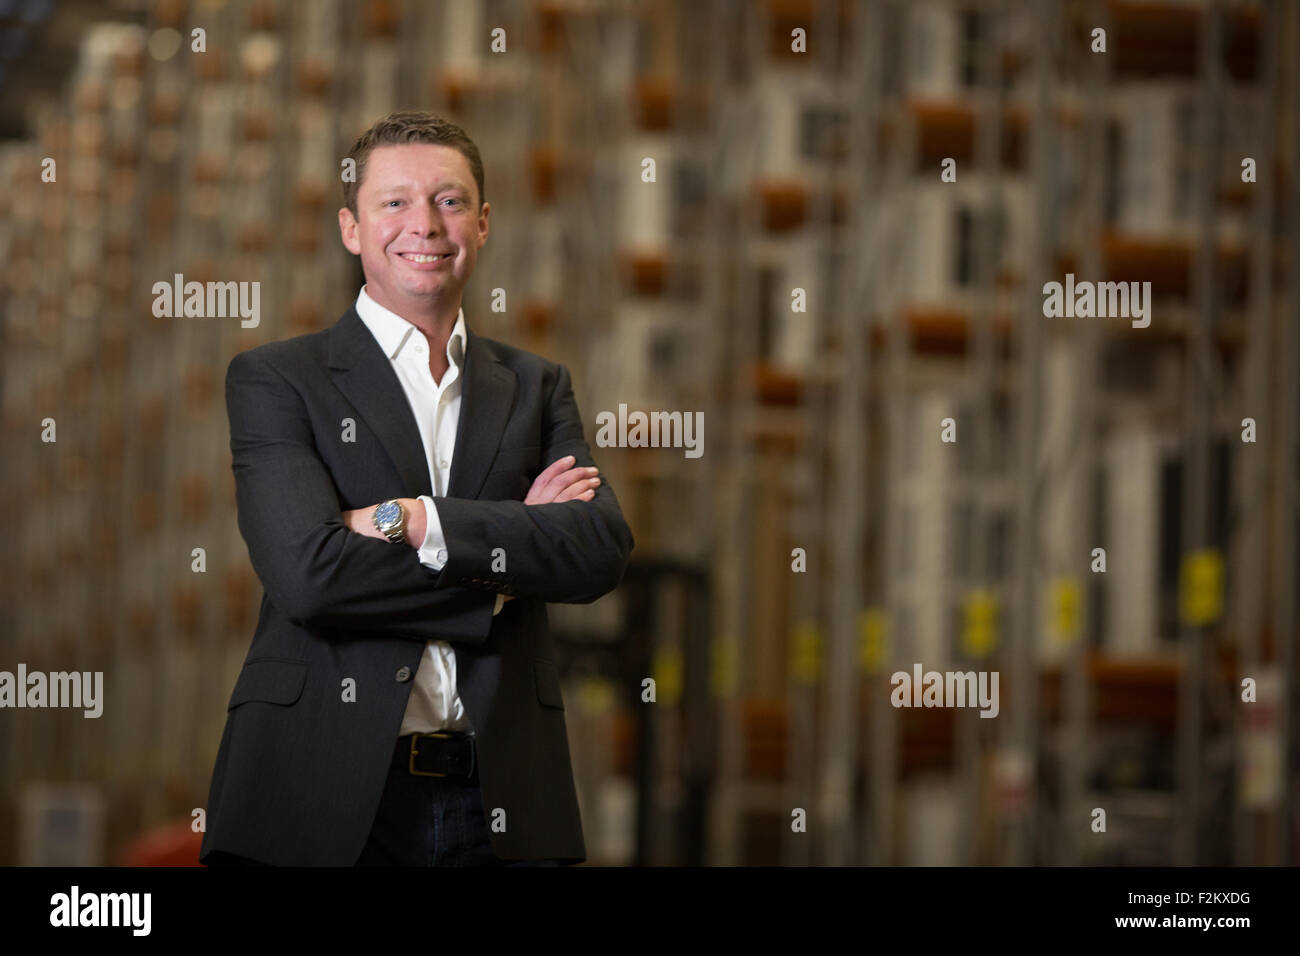 AO CEO John Roberts portraits at the Crewe cheshire distribution centre - Stock Image